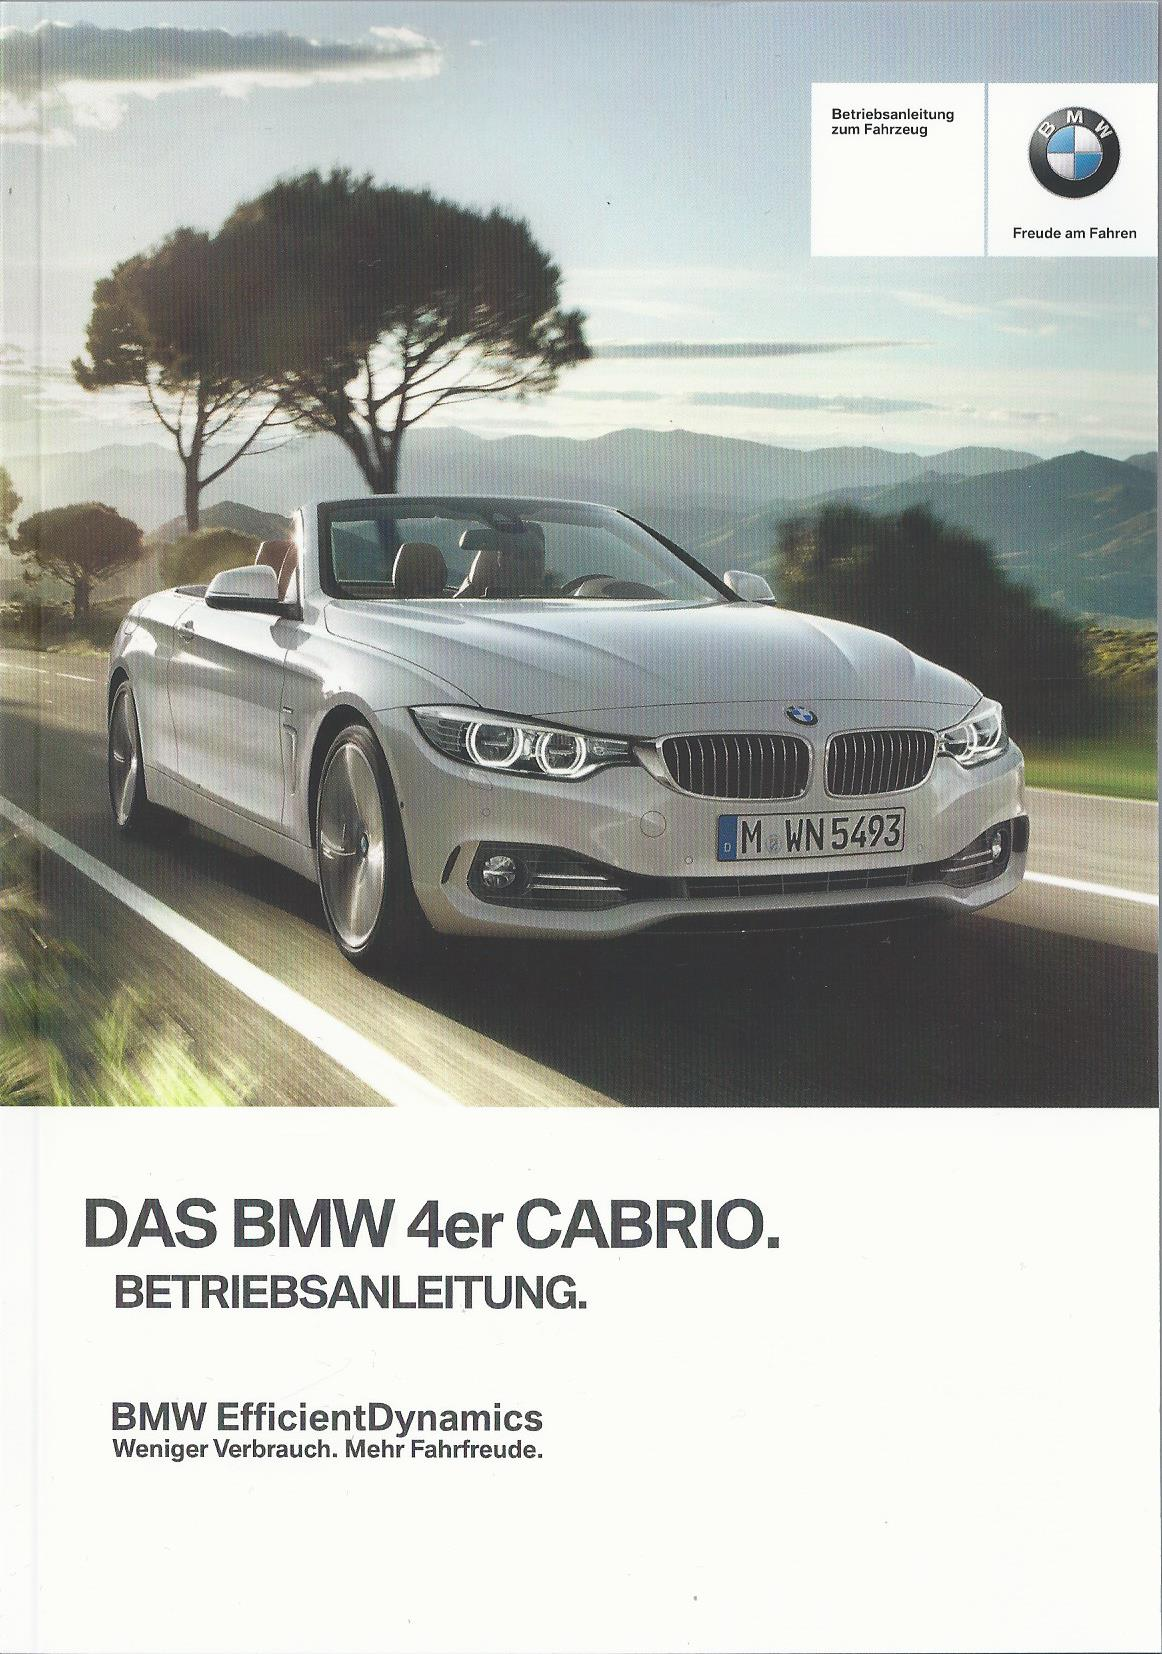 bmw 4er cabrio f33 betriebsanleitung 2015. Black Bedroom Furniture Sets. Home Design Ideas